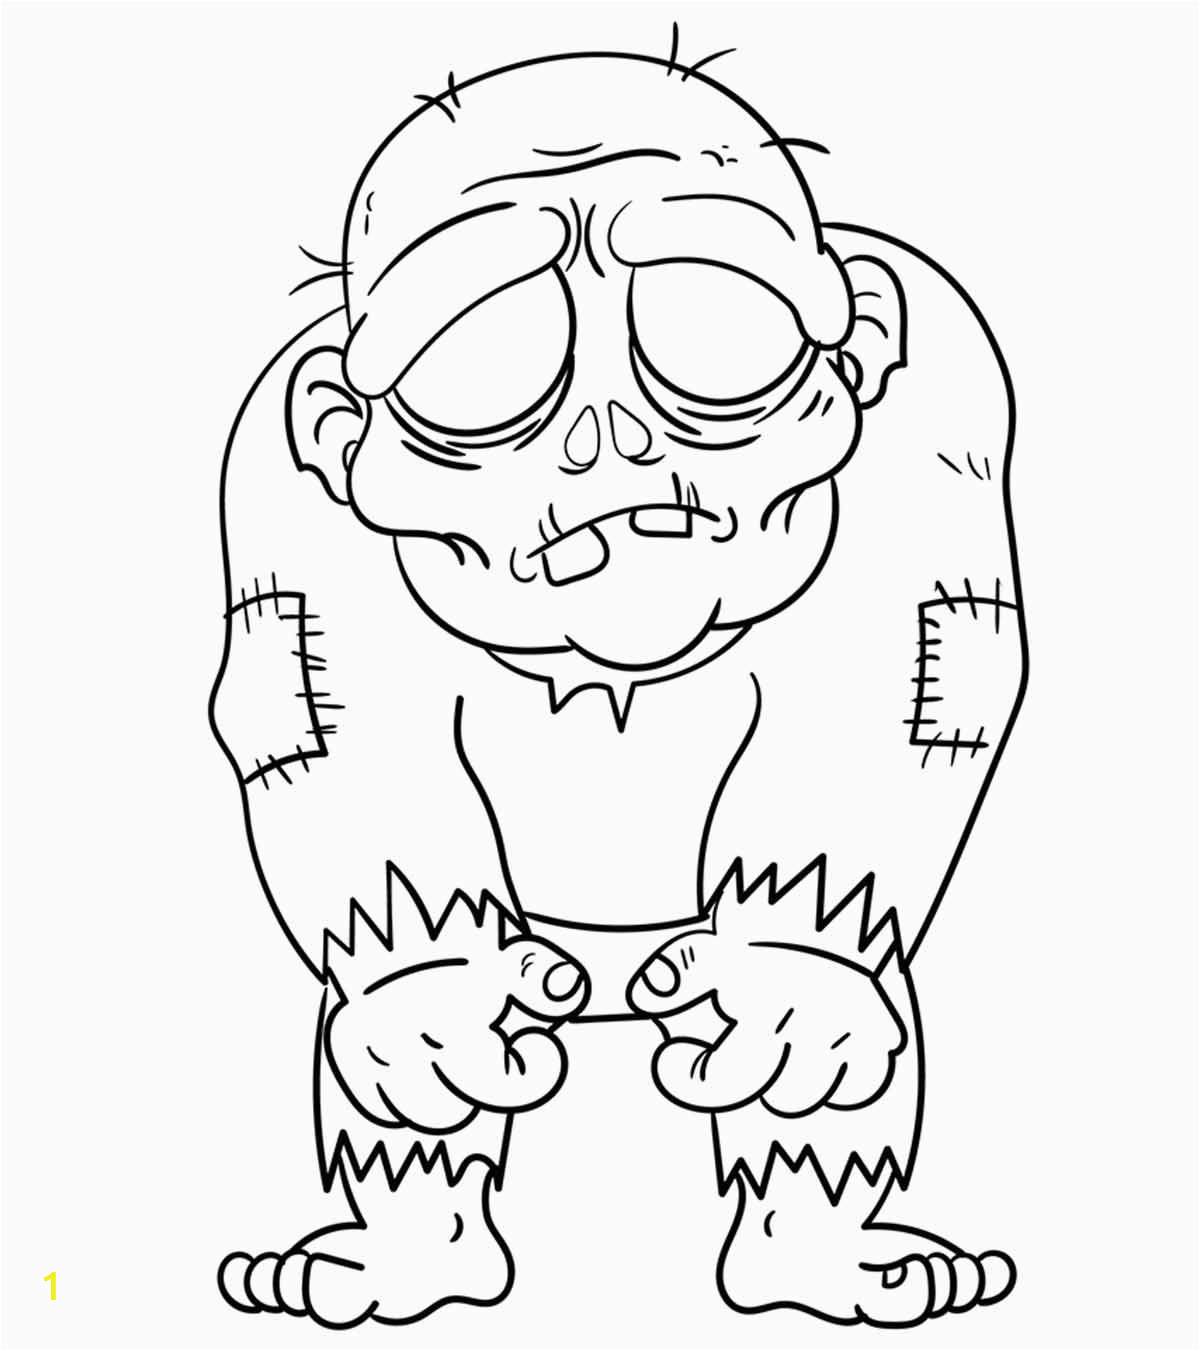 disney zombie coloring pages tremendous top for your kids free printable